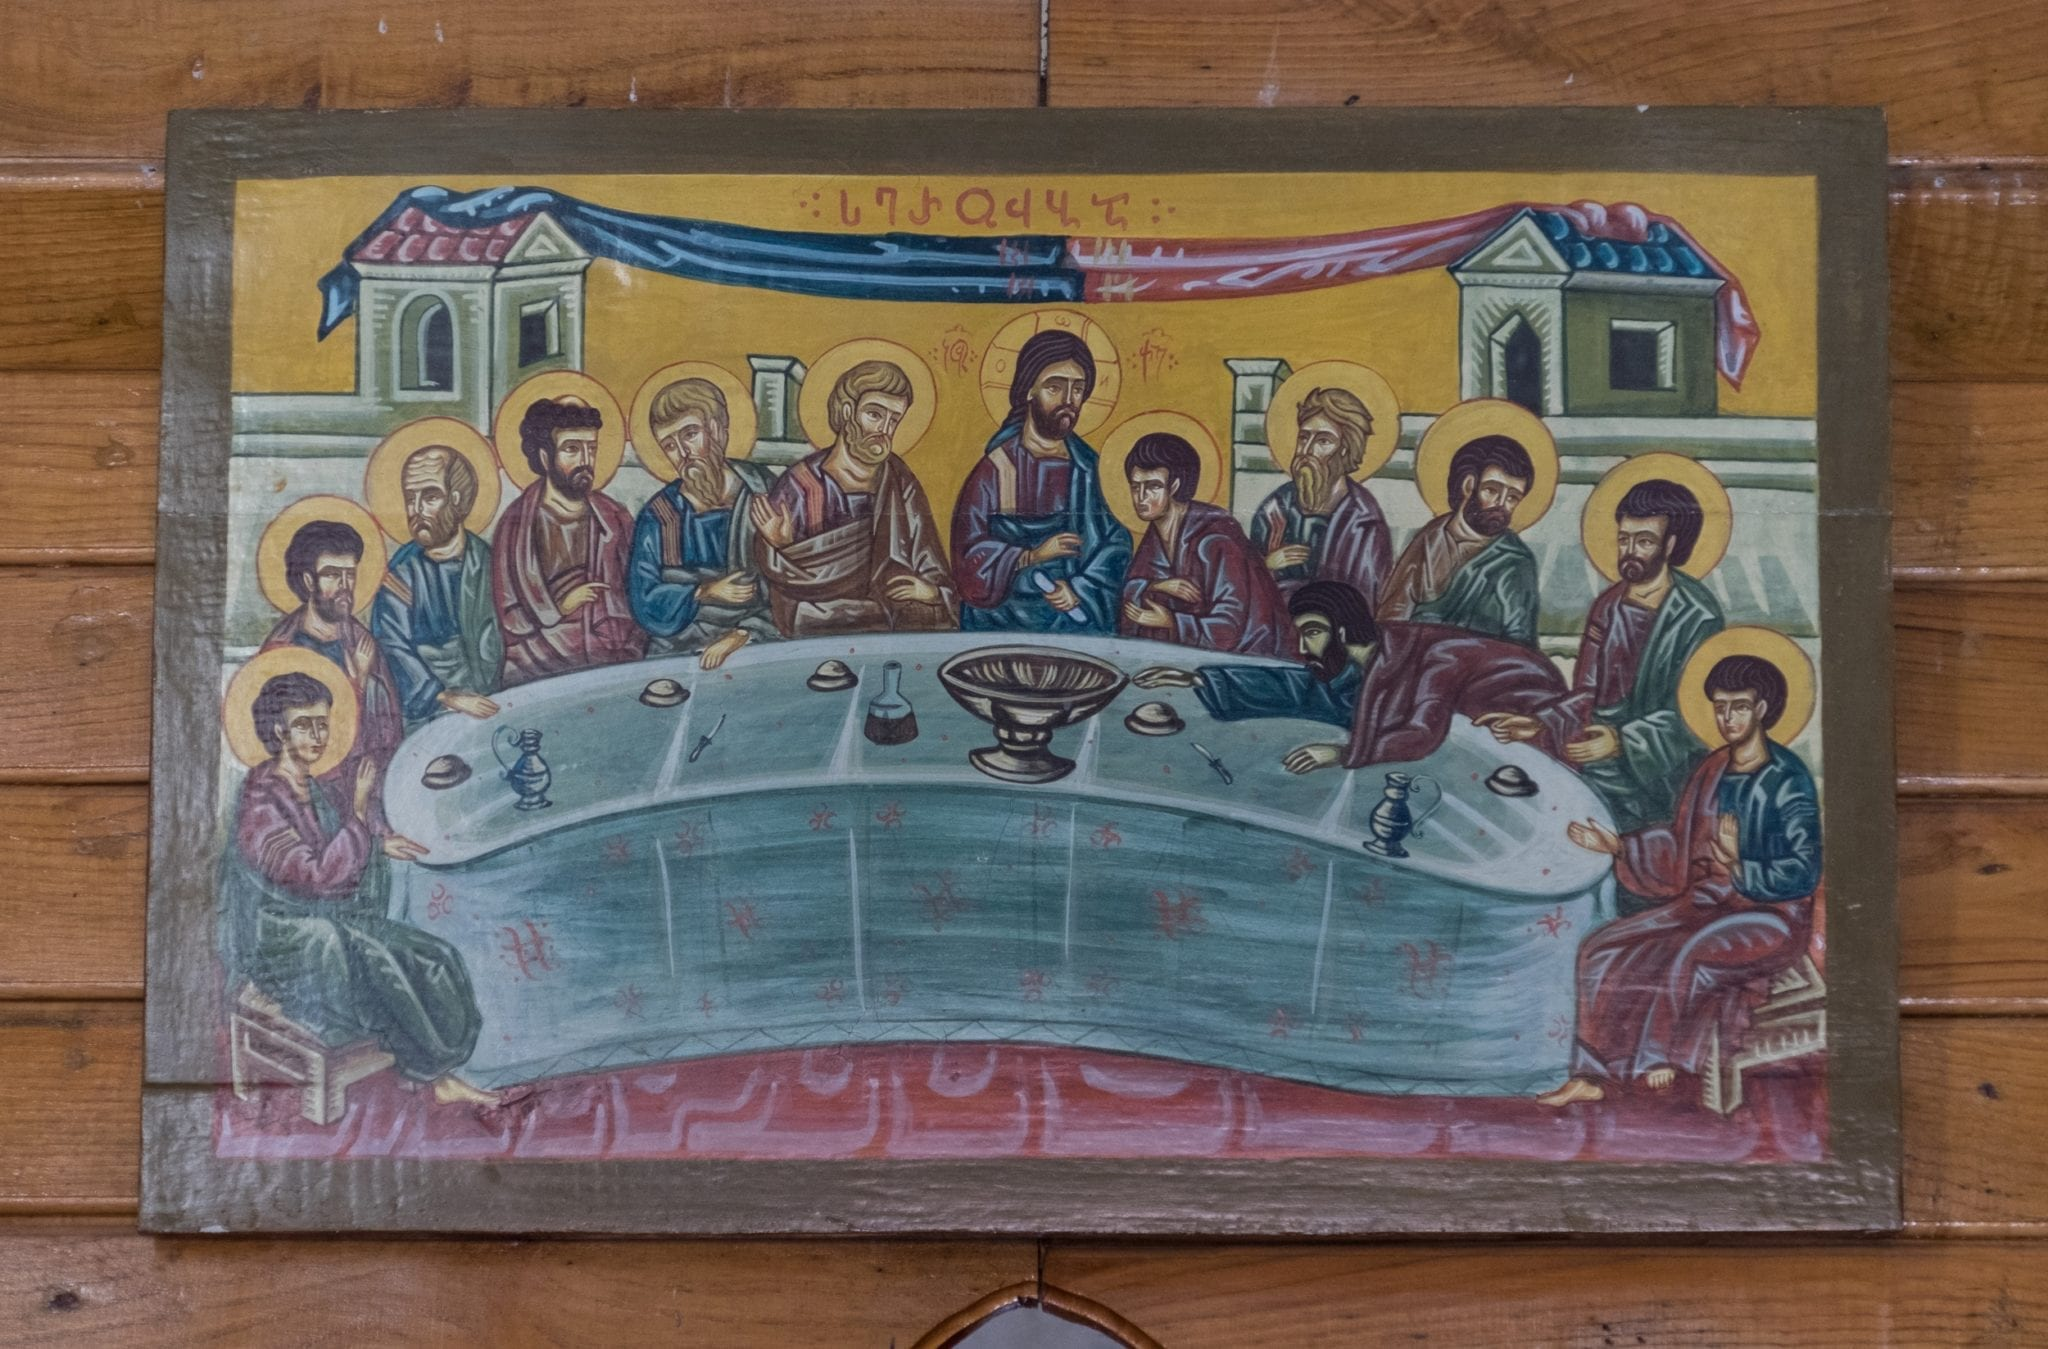 A close-up on a Georgian painting of The Last Supper, with Jesus in the middle surrounded by the disciples.